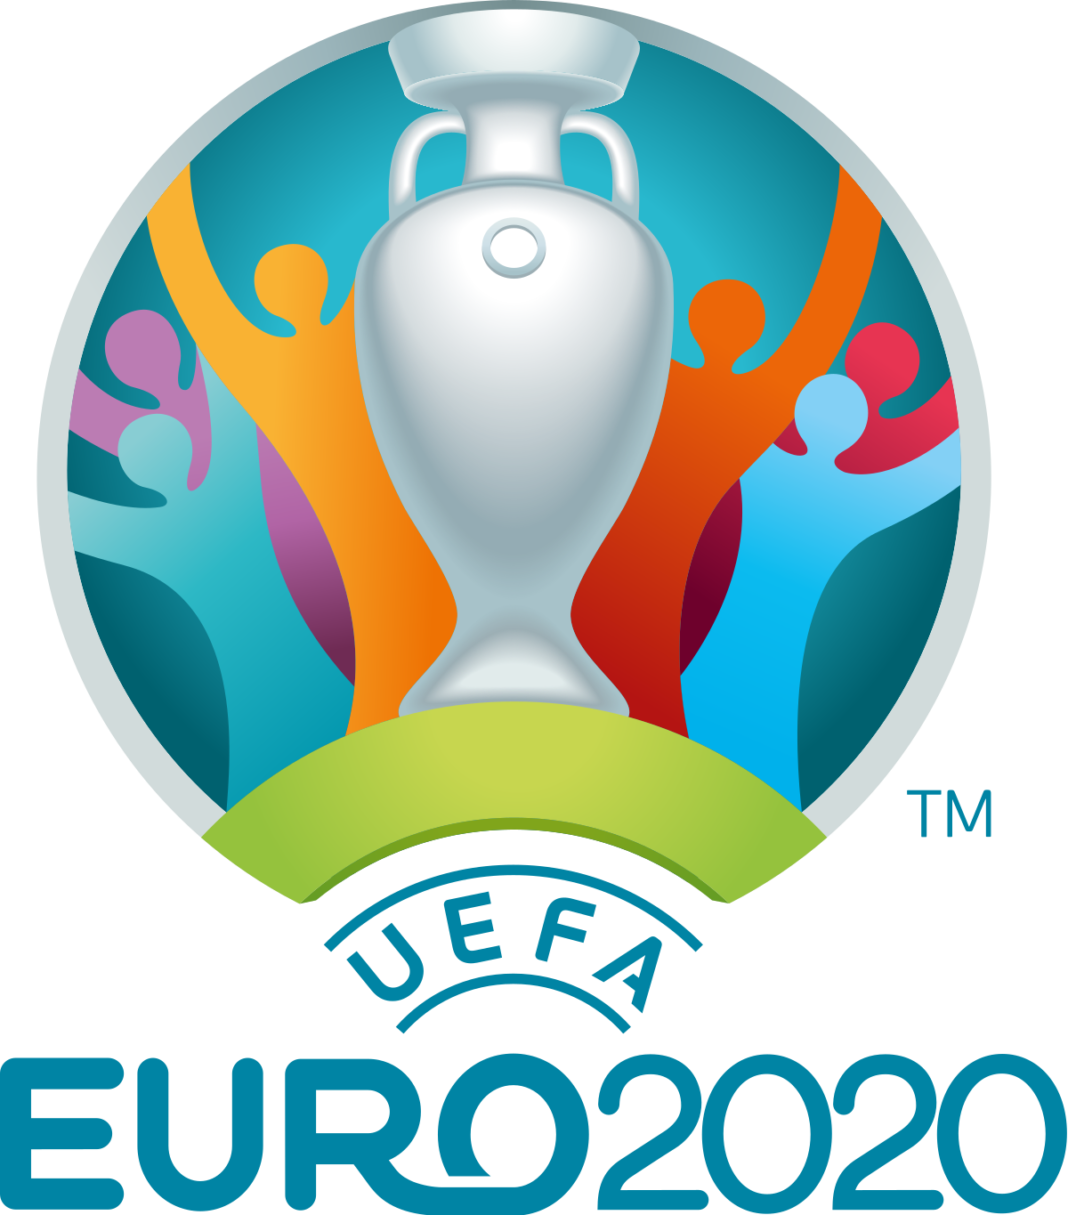 England vs Italy: UEFA receives petitions to replay Euro 2020 final